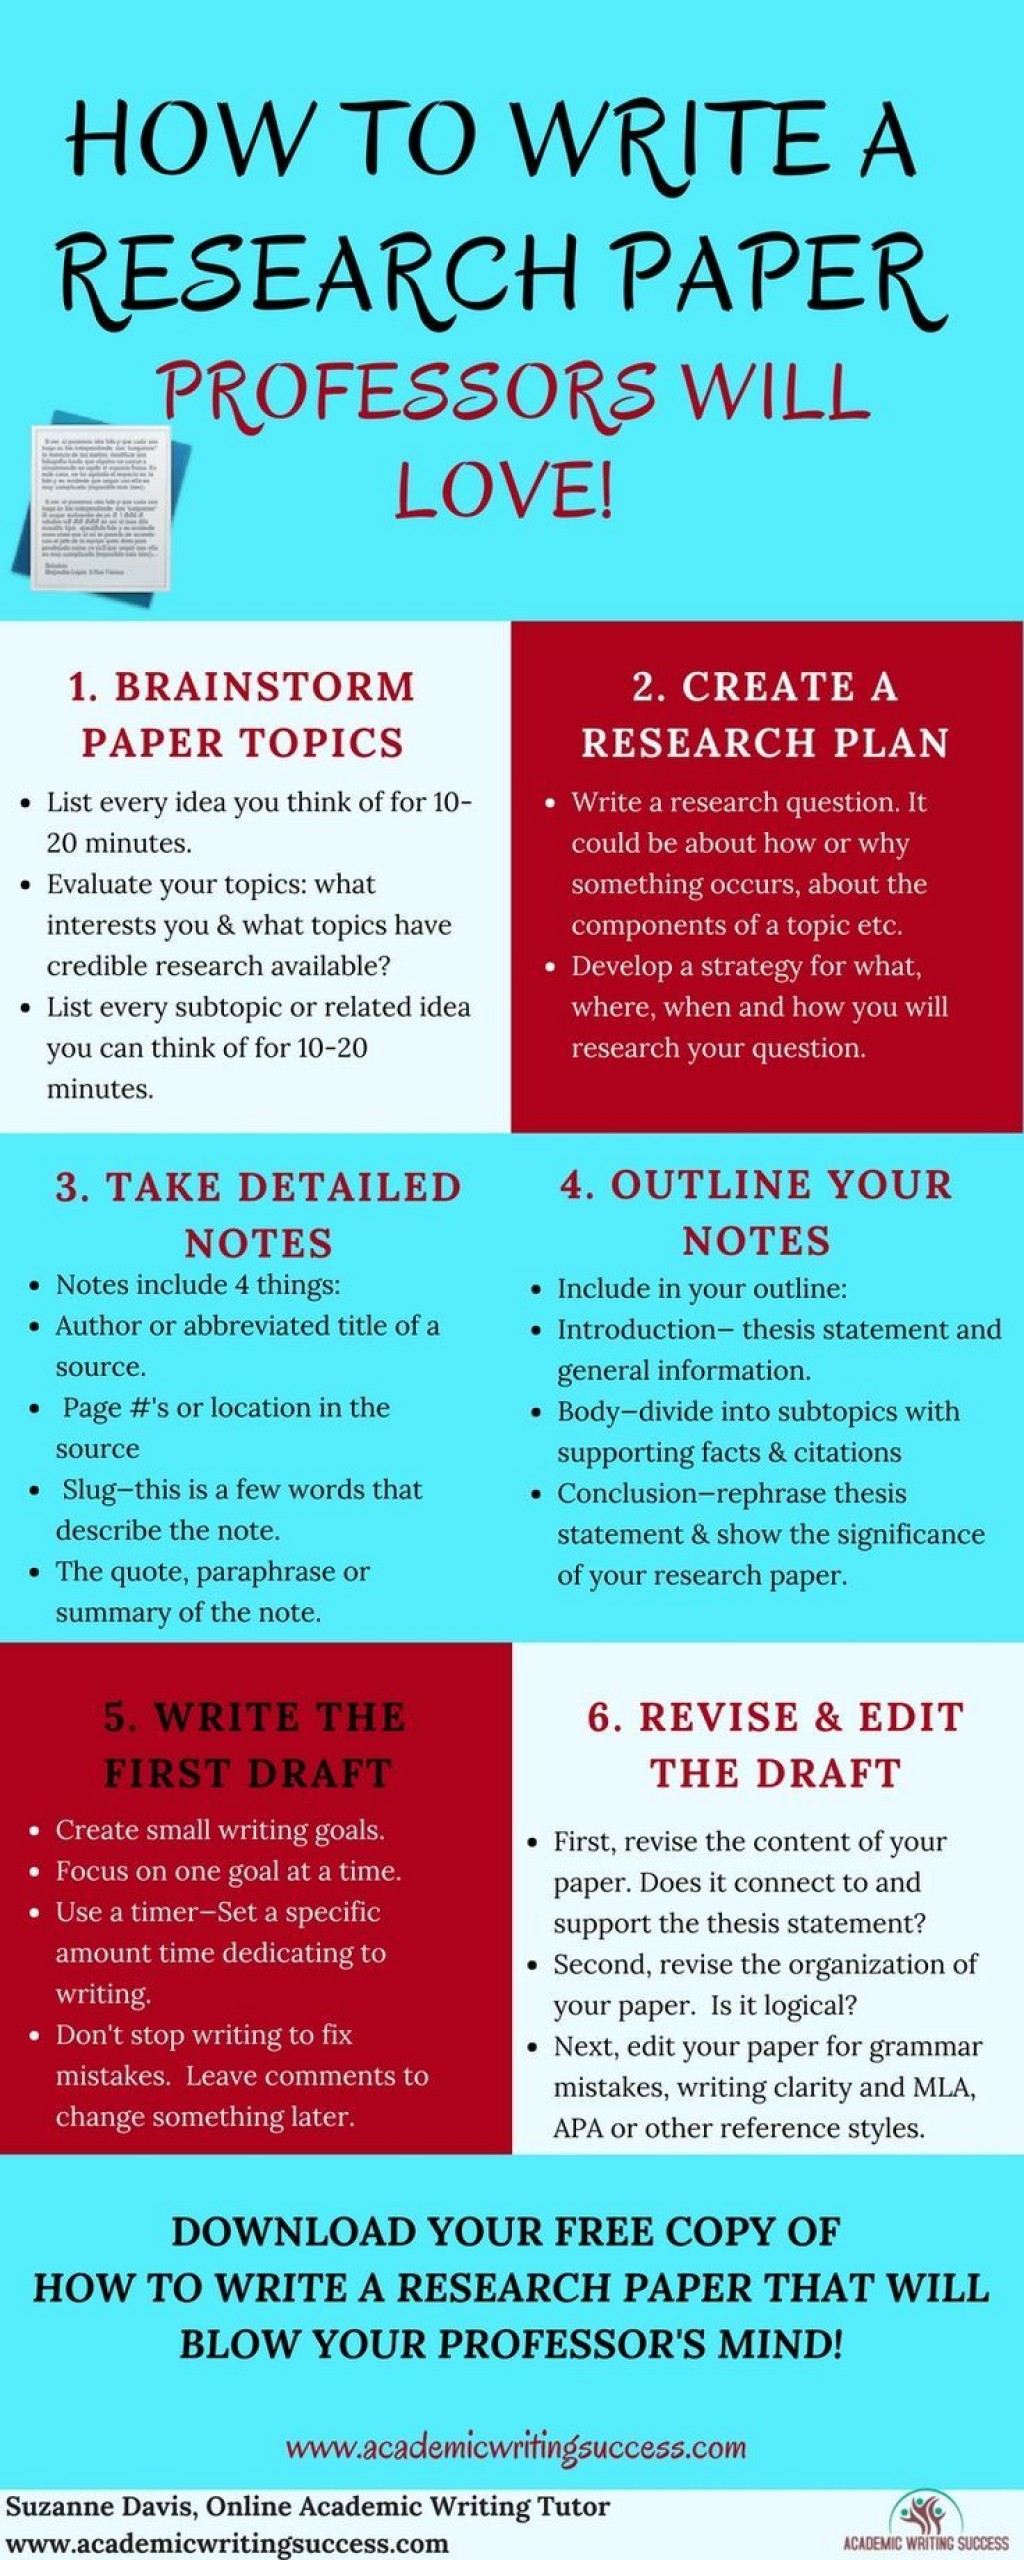 006 Research Paper Tips For Papers Wondrous Effective Writing An Presentation Large